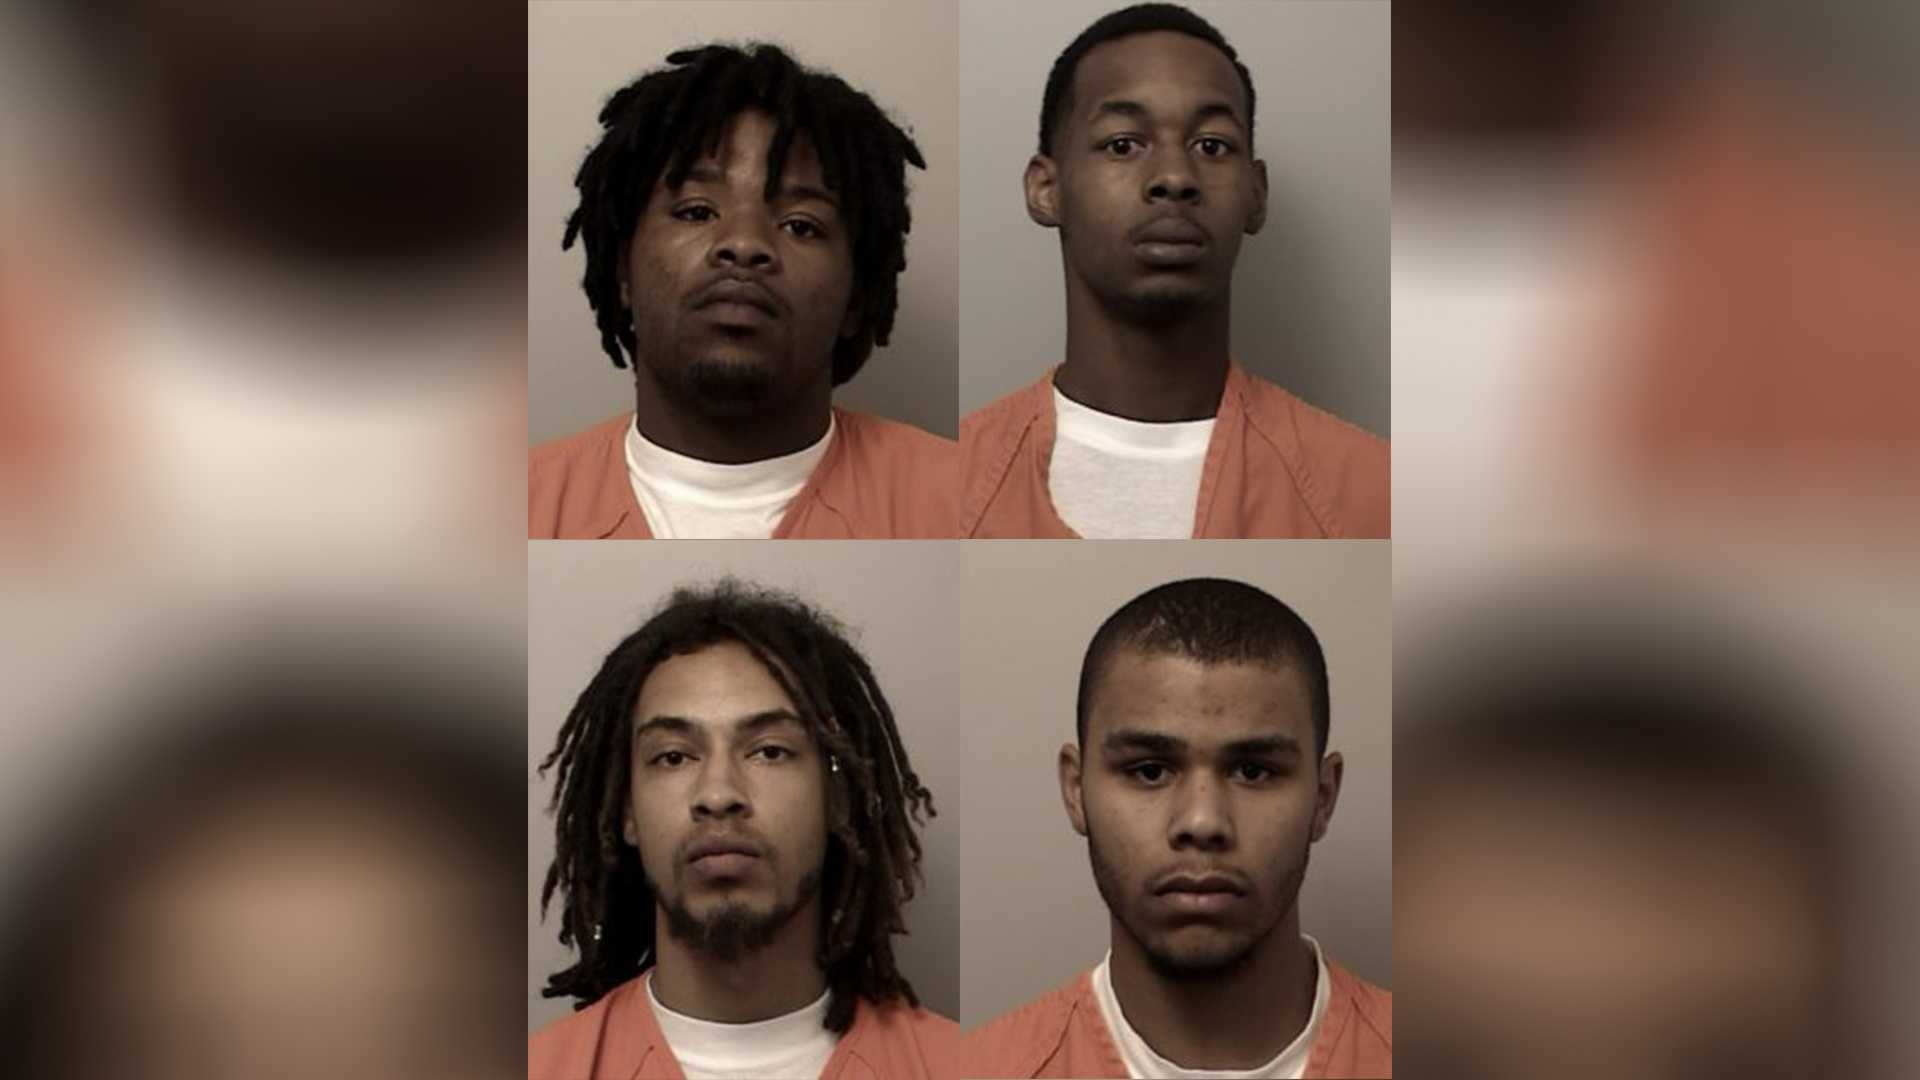 Brandon Waters (top left), Derrick Fields (top right), Walter McGee (bottom left) and Ezekiel Caesar (bottom right) were all booked at the El Dorado County Jail on Sunday. (September 11, 2016)